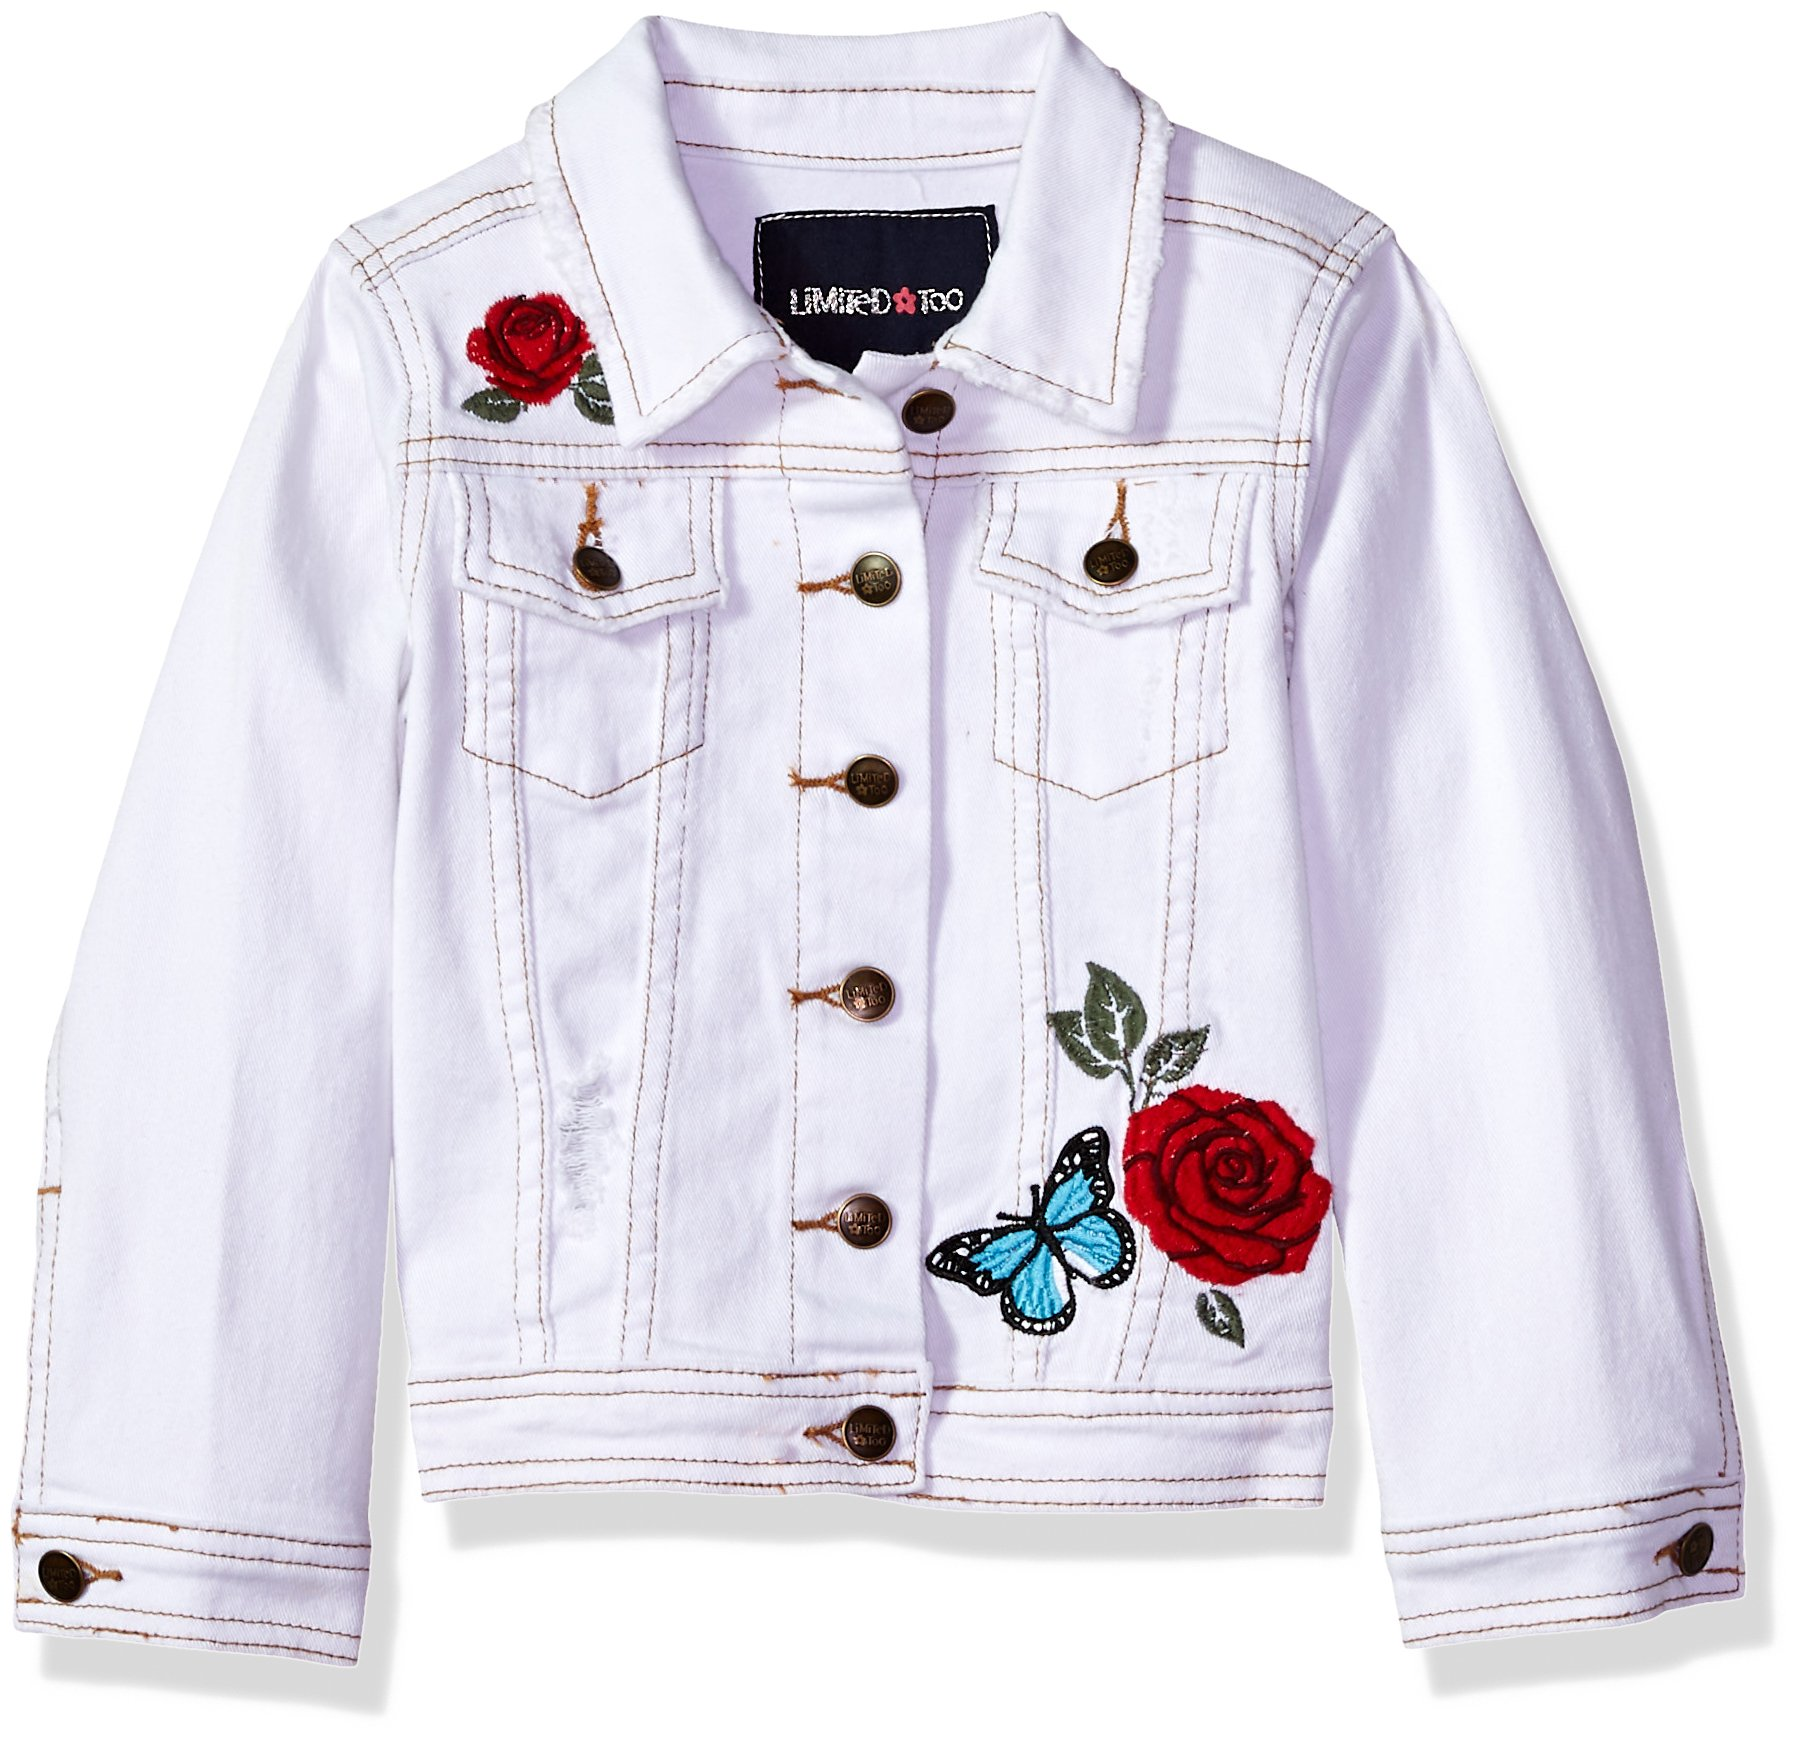 Limited Too Little Girls' Jean Jacket, White, 10/12